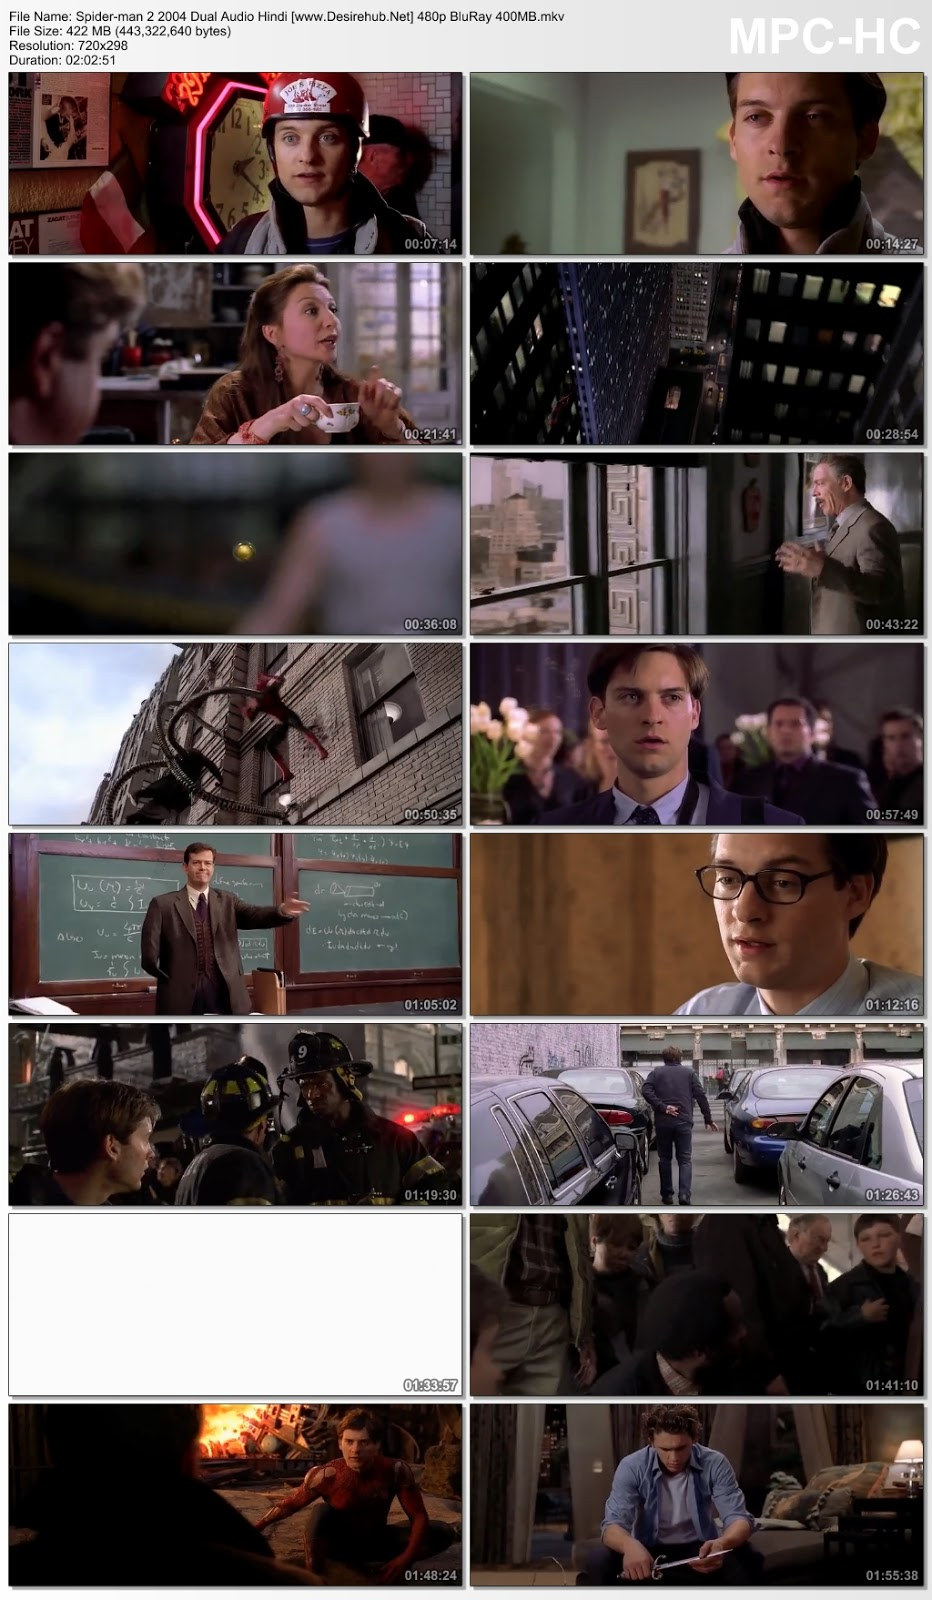 Spider-man 2 2004 Dual Audio Hindi 480p BluRay 400MB Desirehub